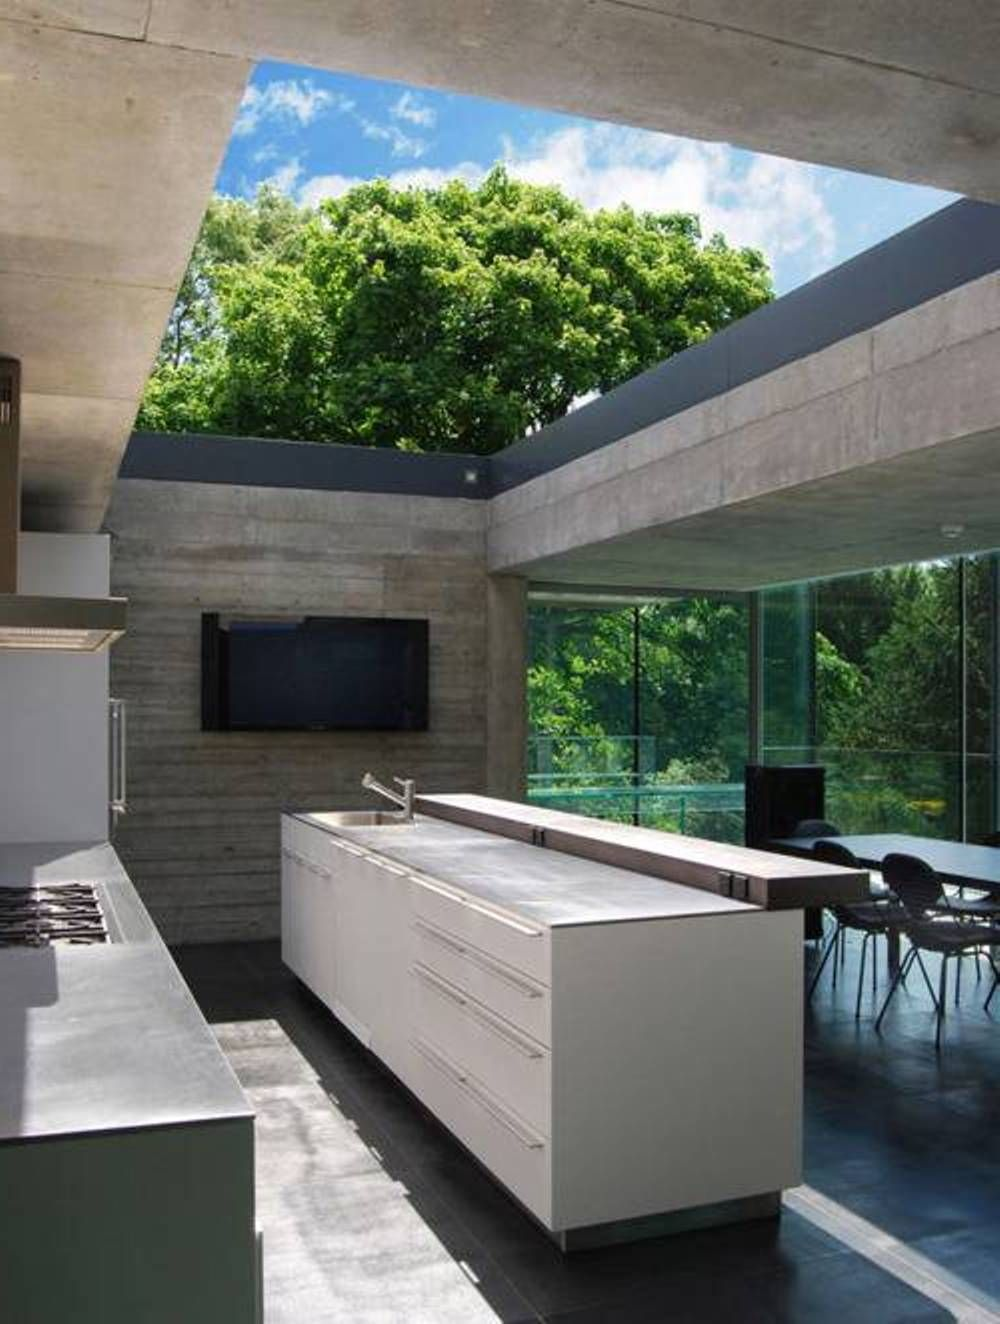 outside kitchen design ideas 15 modern outdoor kitchen designs for summer relaxation 21175